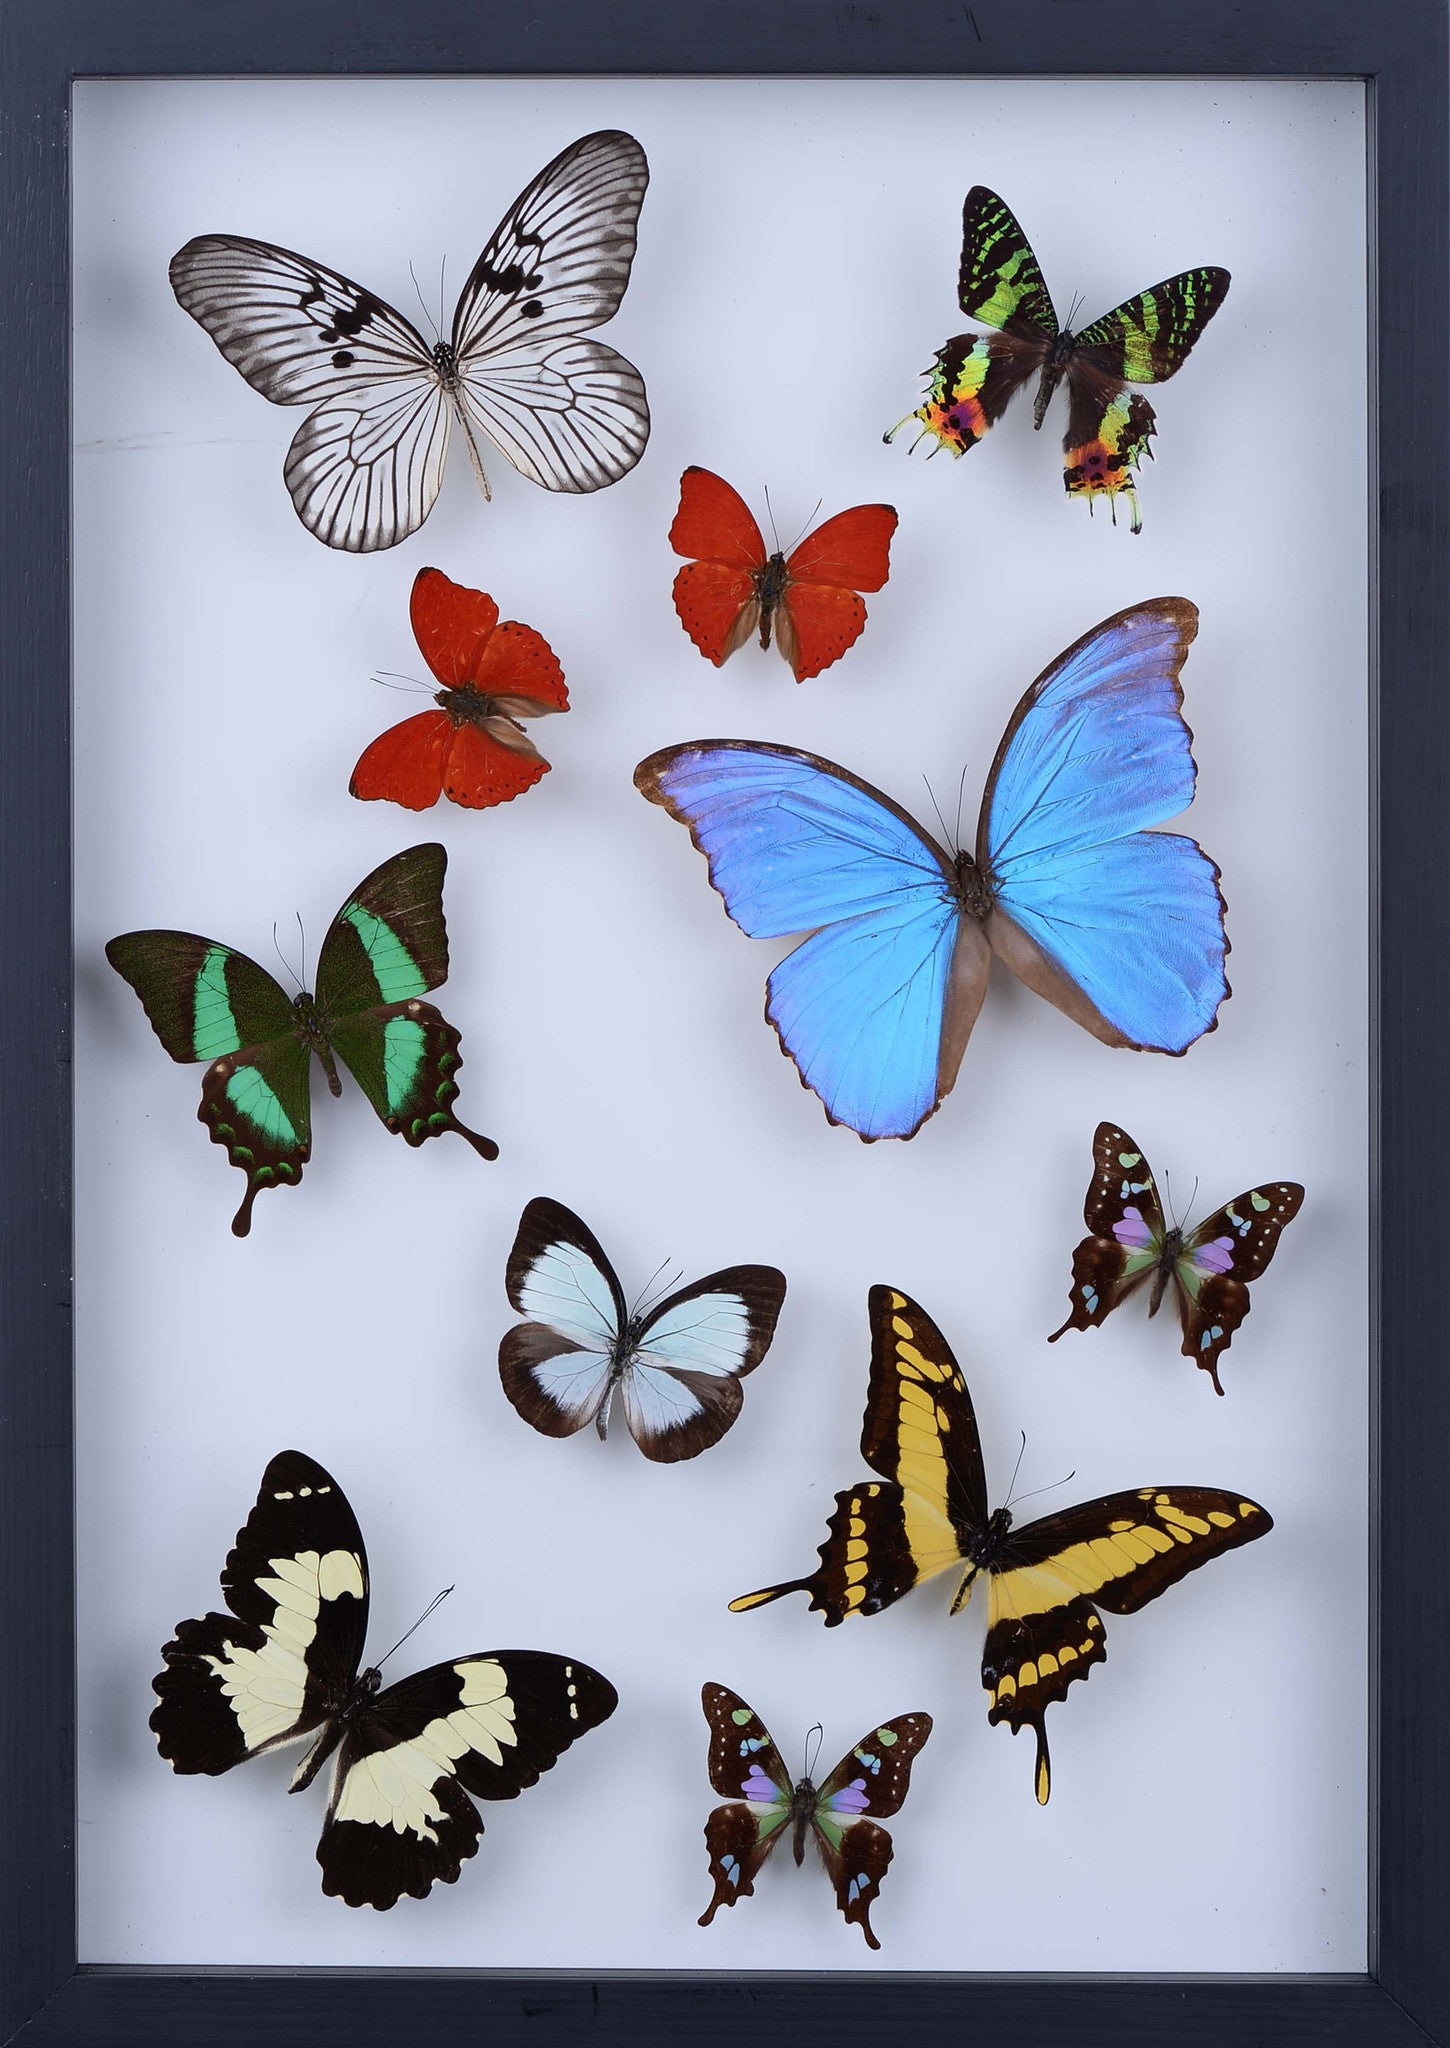 real butterfly collection all natural butterflies mounted under glass in a wall hanging frame